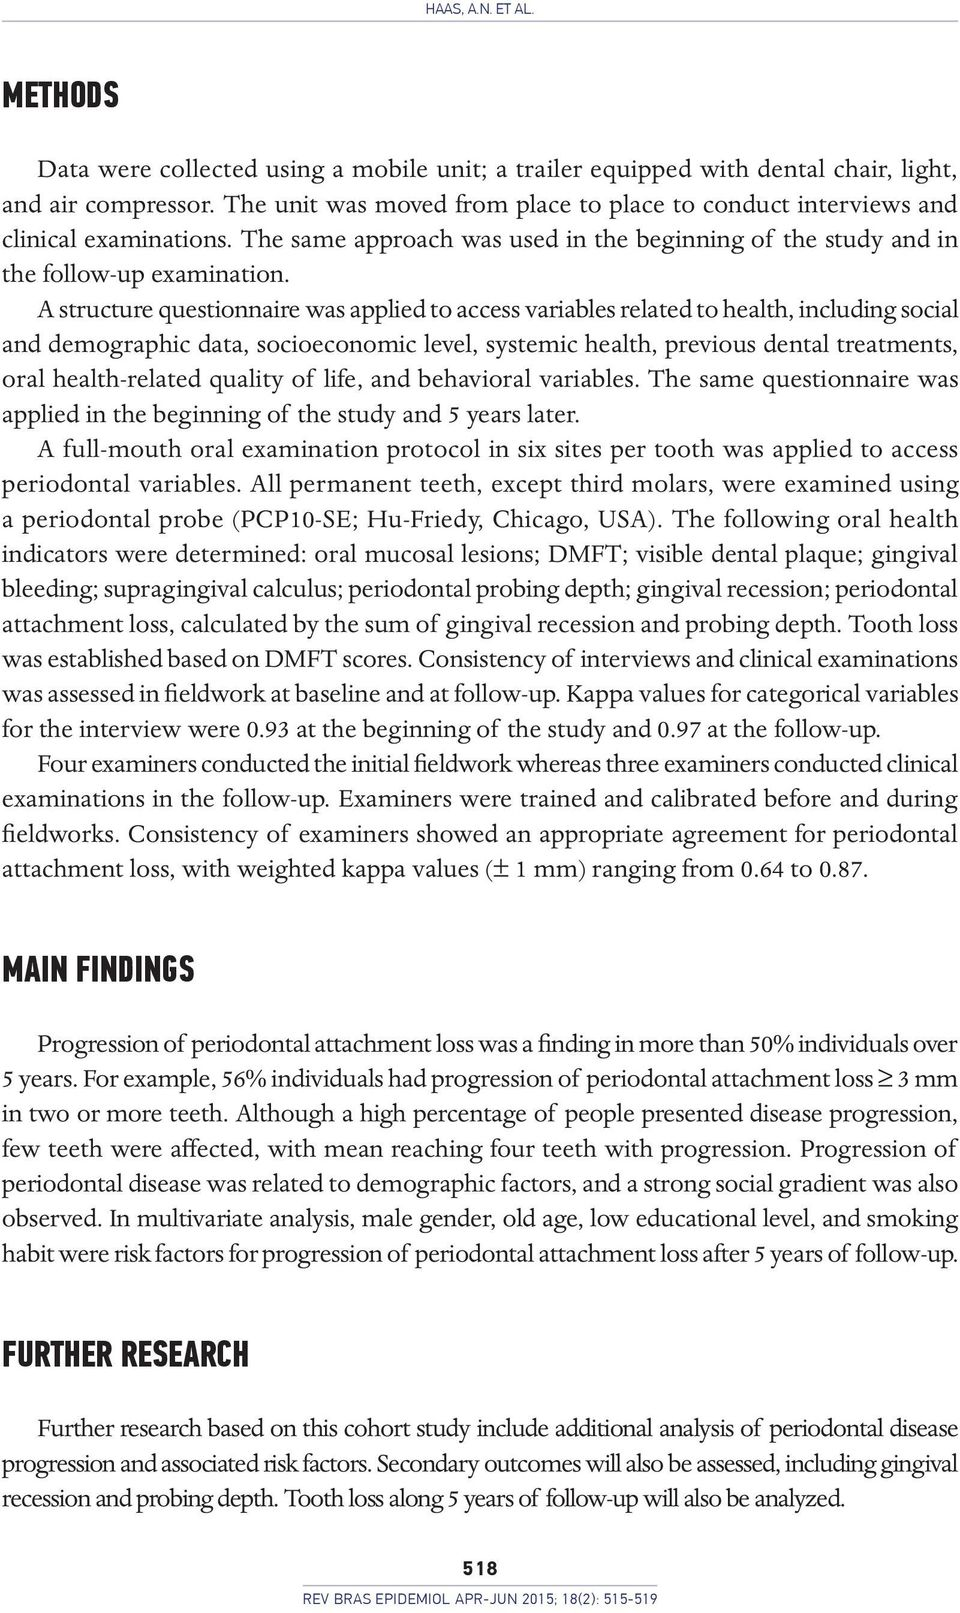 A structure questionnaire was applied to access variables related to health, including social and demographic data, socioeconomic level, systemic health, previous dental treatments, oral